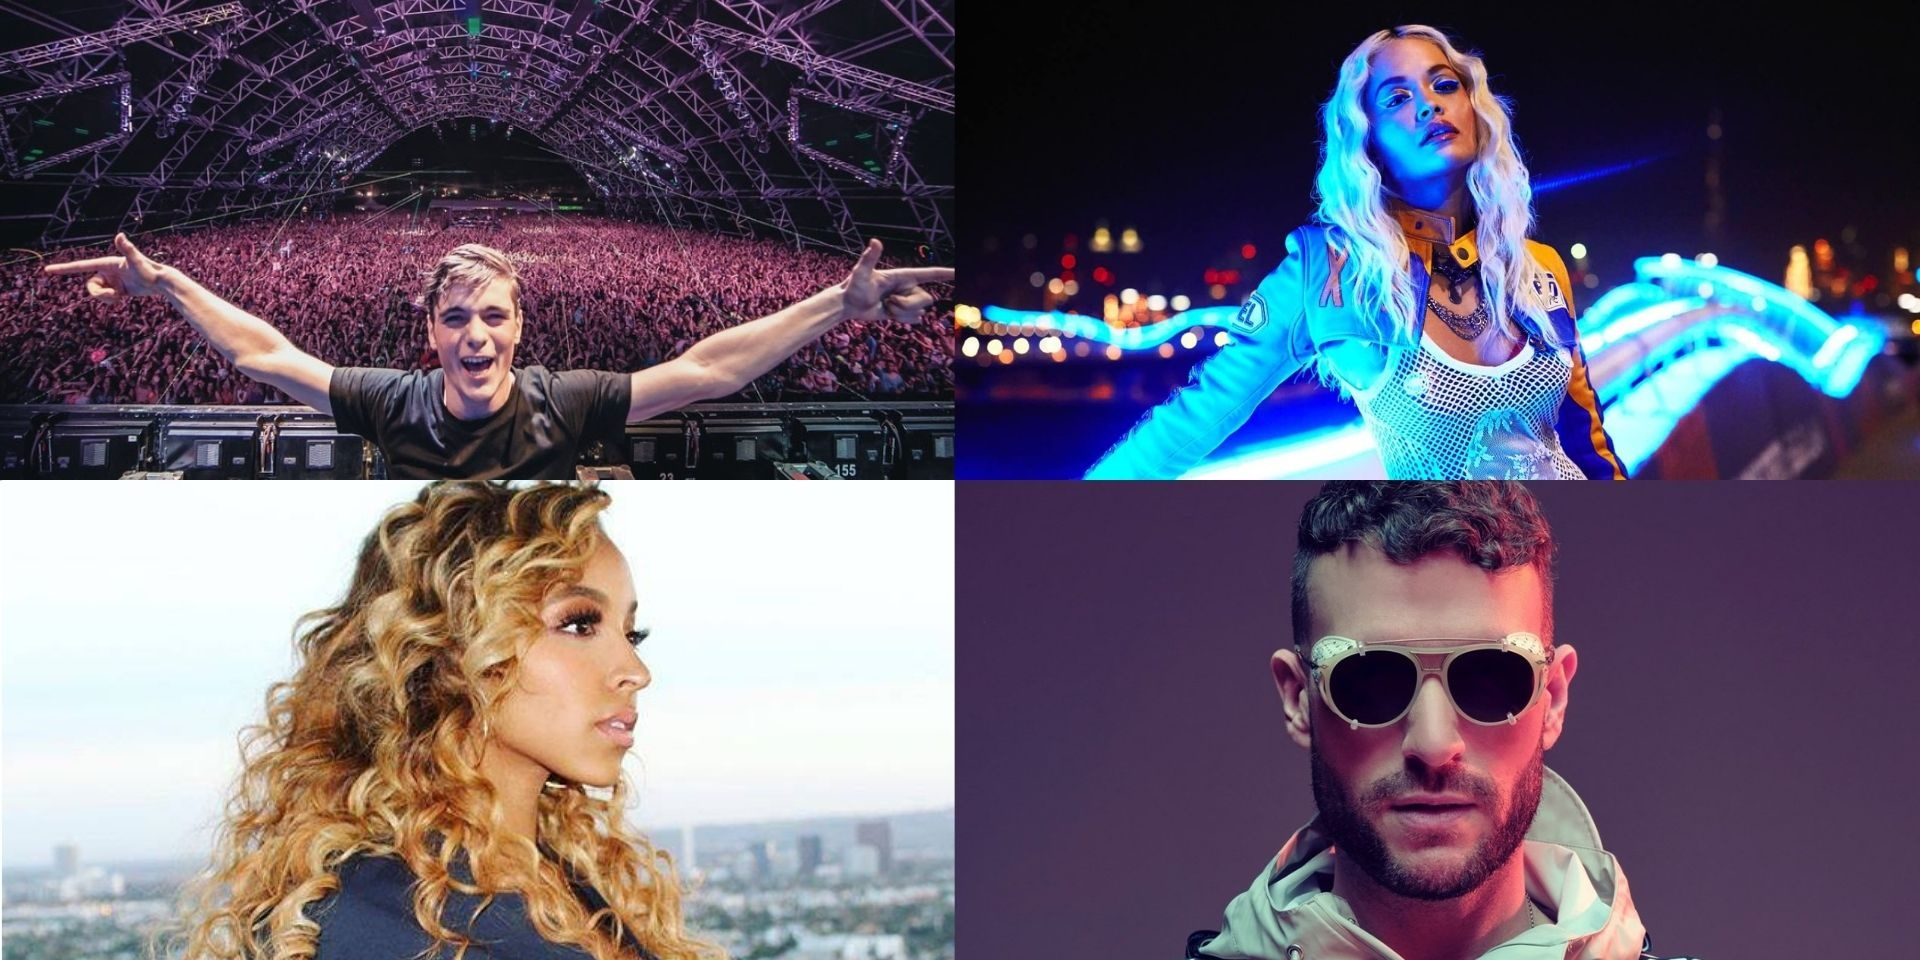 Martin Garrix, Don Diablo, Tinashe, Rita Ora, and more to perform at Hydeout: The Prelude digital music festival